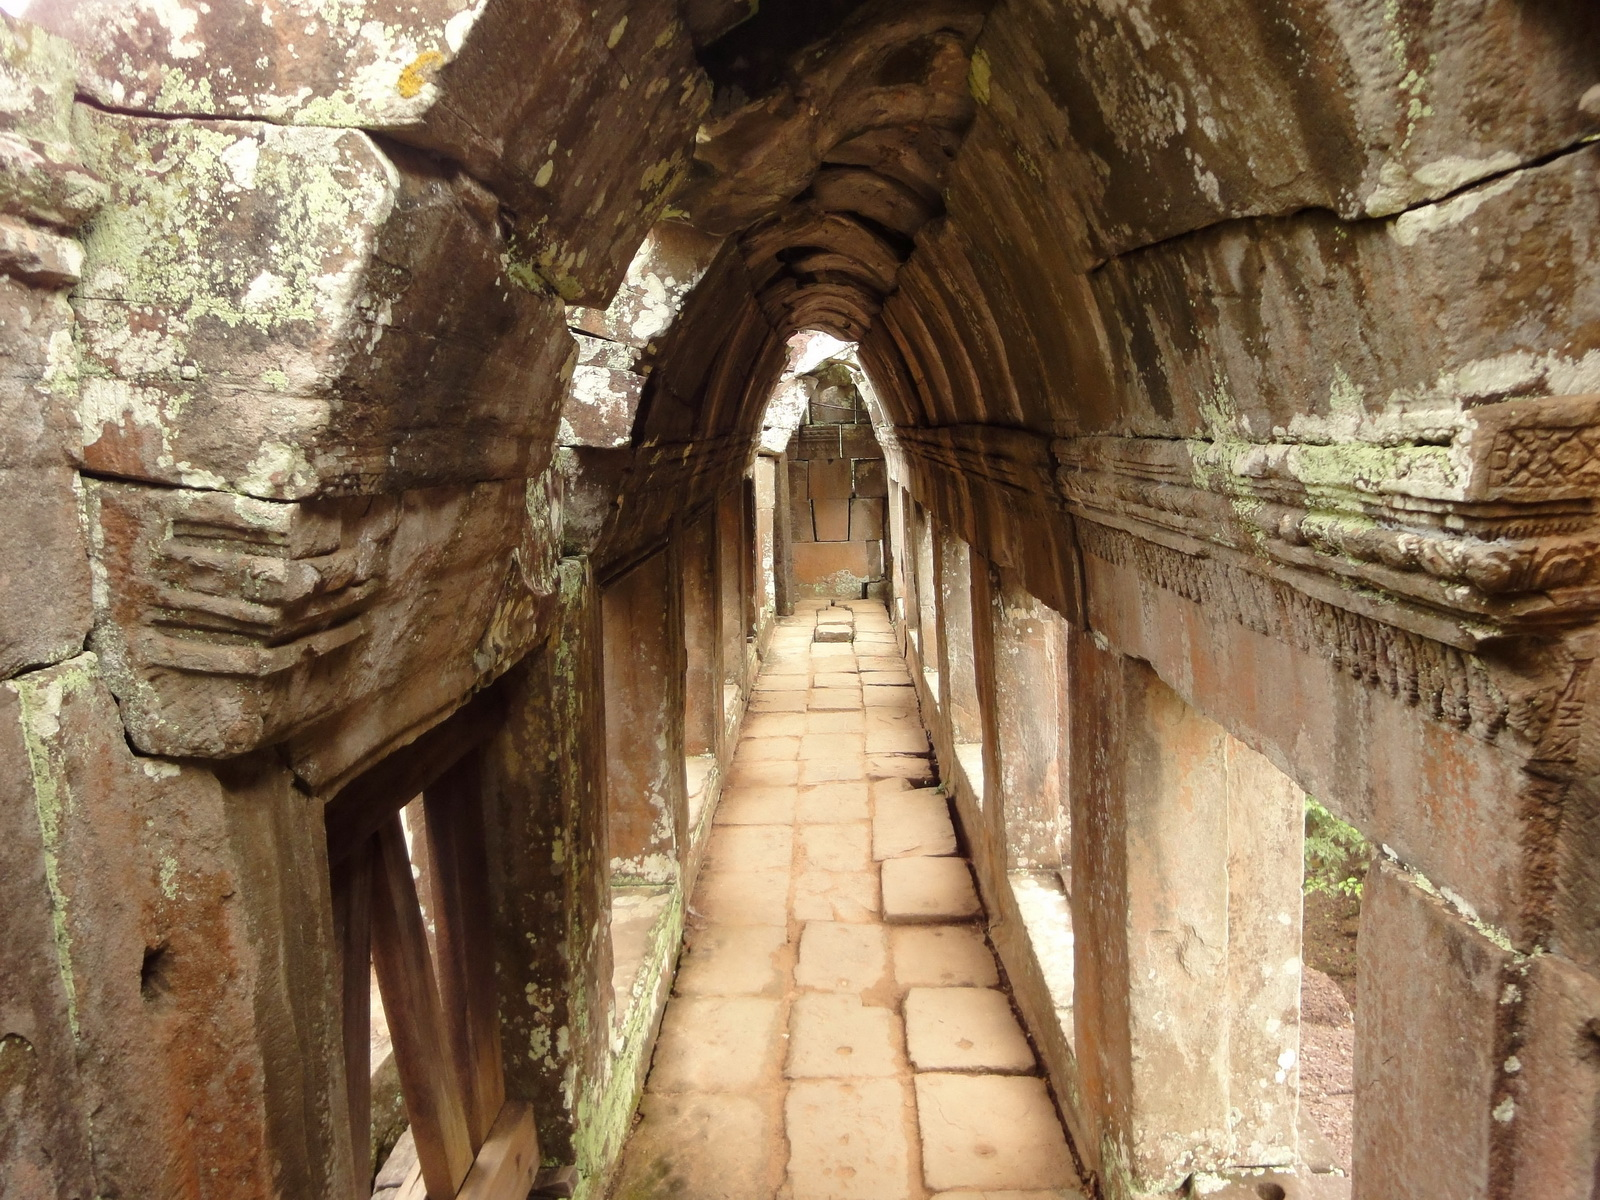 Phimeanakas central tower passageways Hindu Khleang style 01